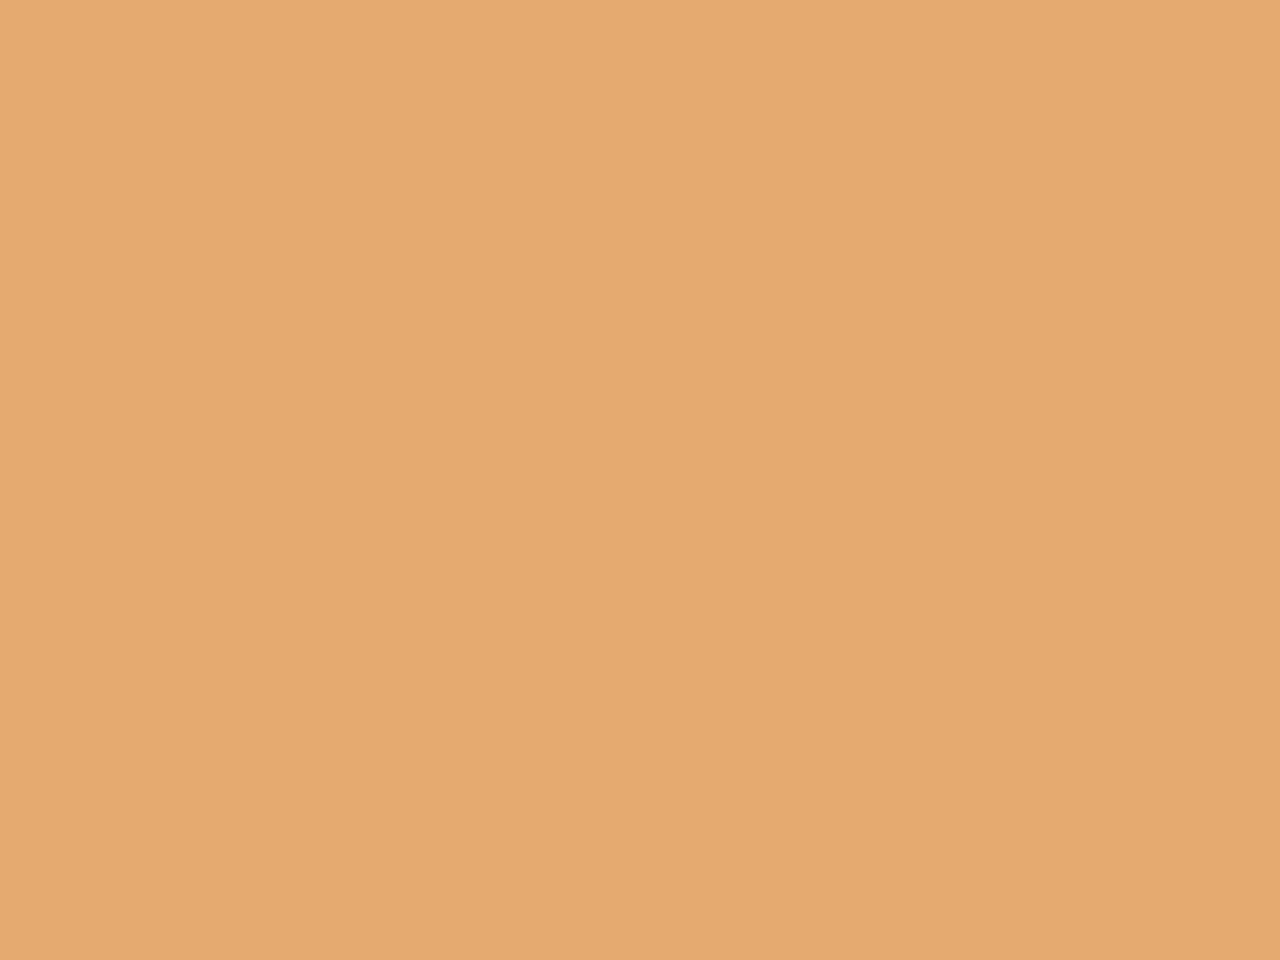 1280x960 Fawn Solid Color Background